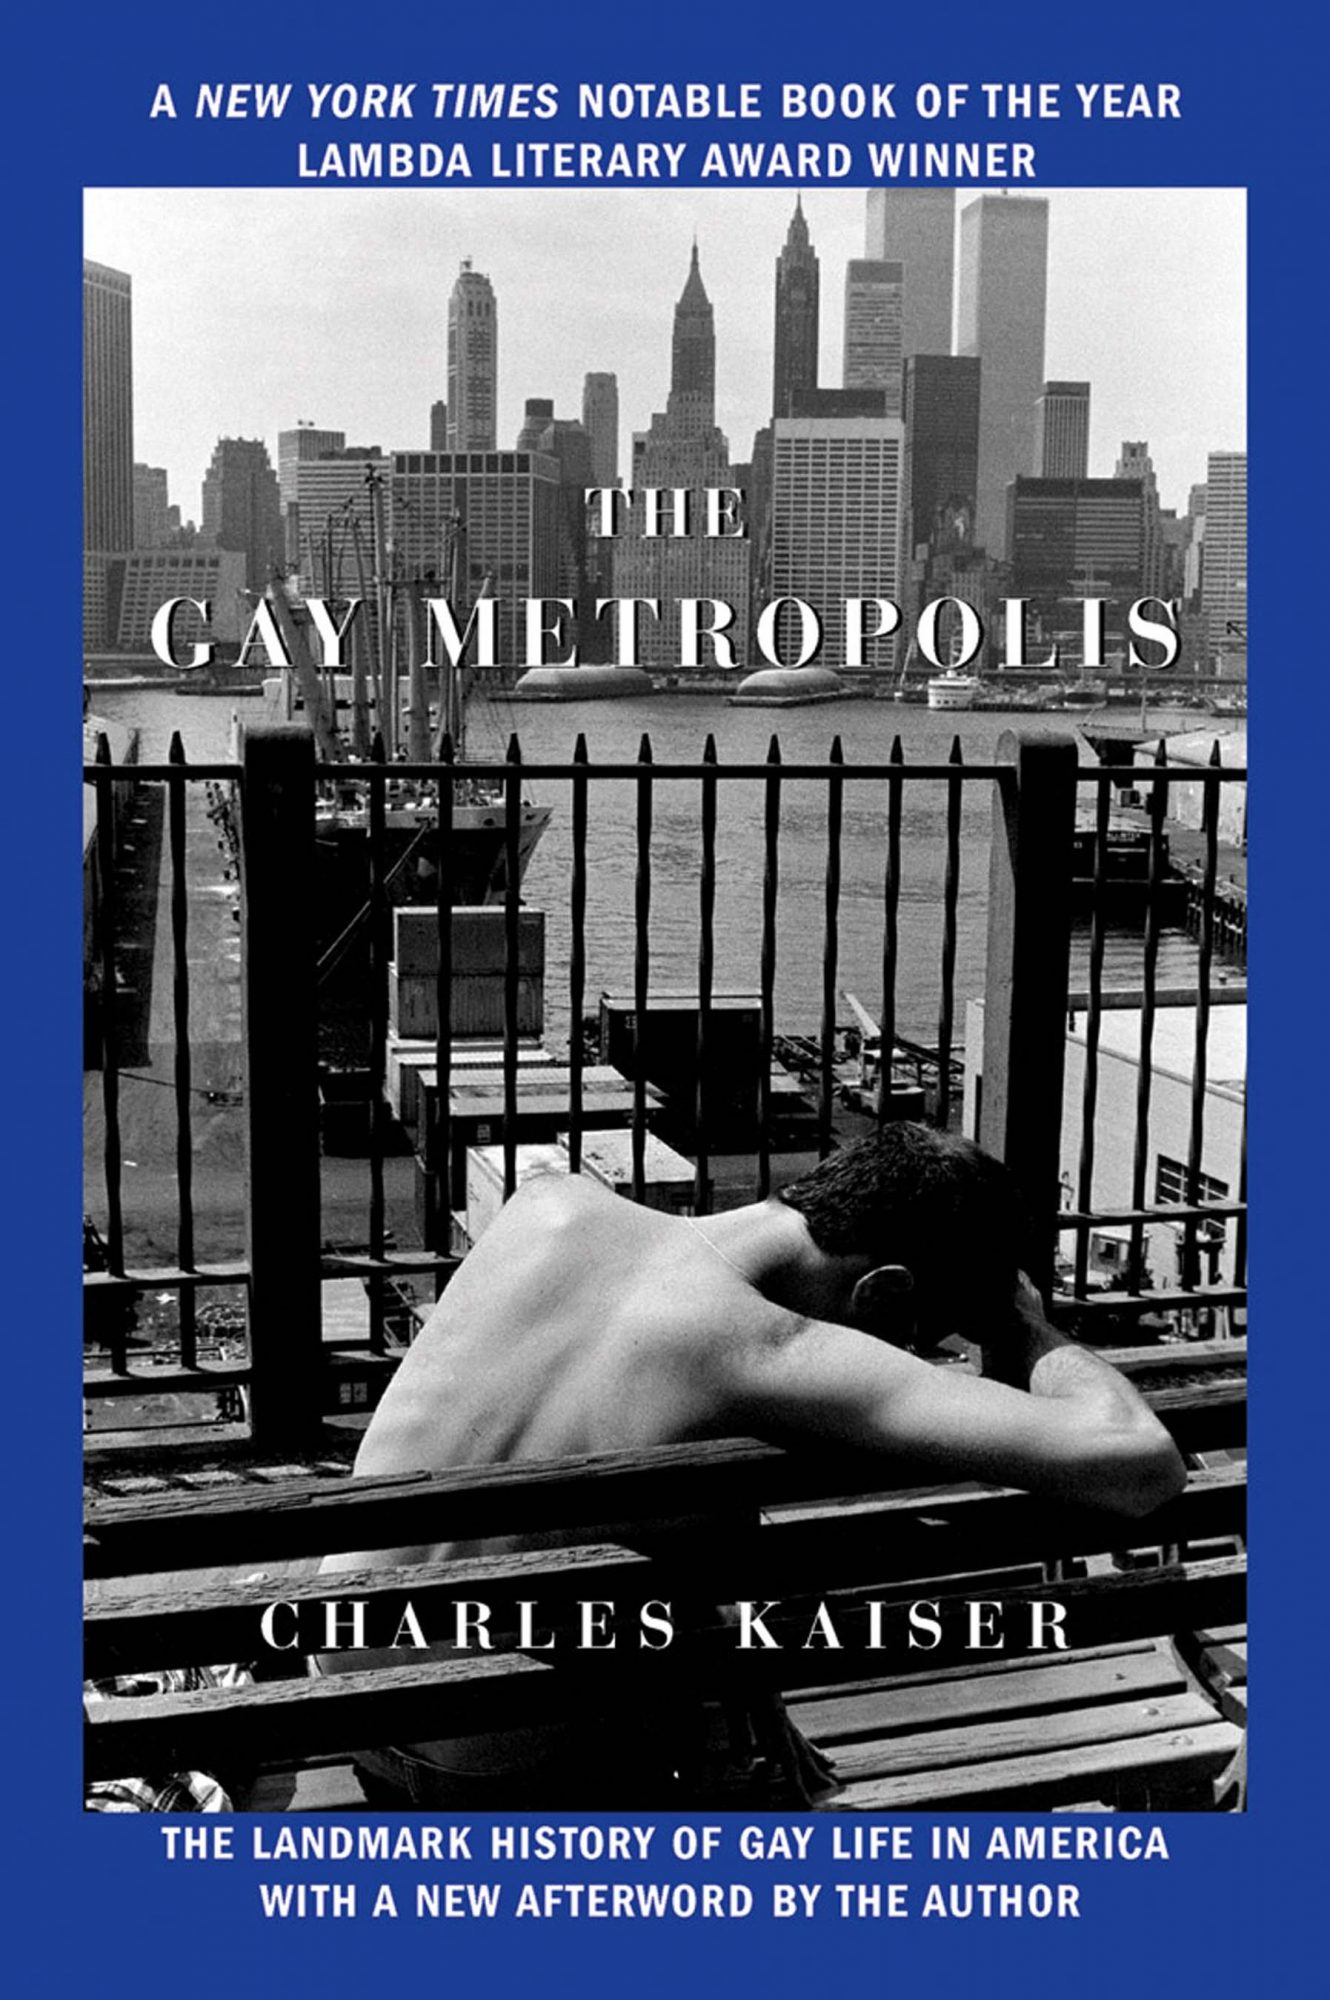 The Gay Metropolis: The Landmark History of Gay Life in America by Charles Kaiser